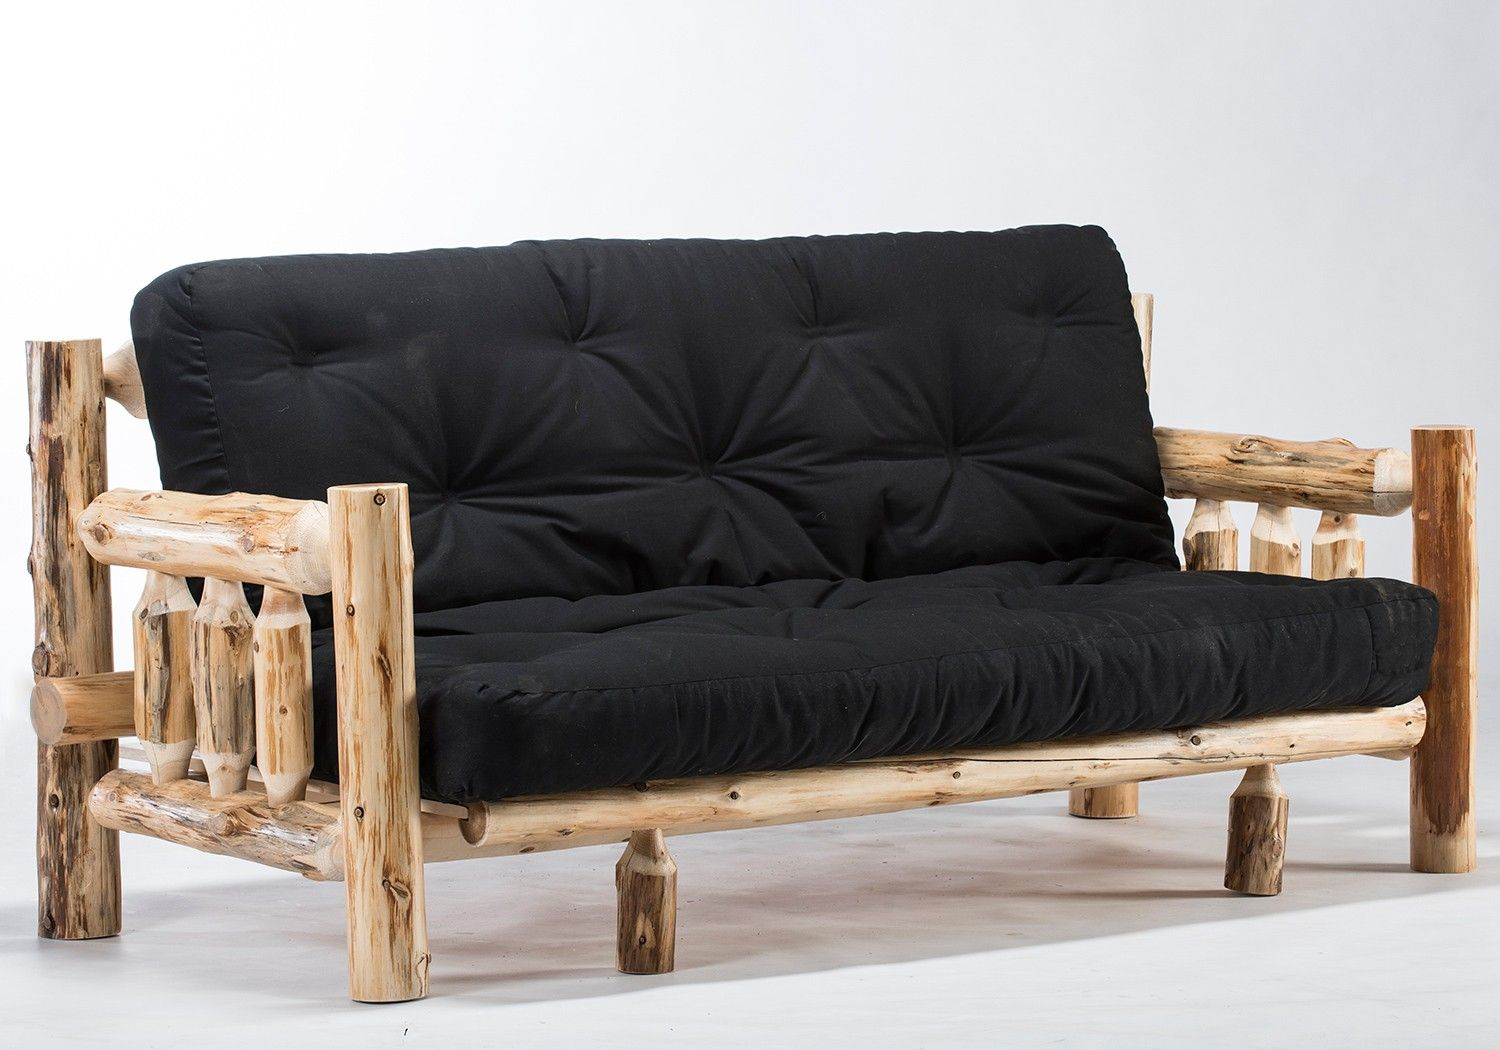 This Beautifully Rustic Log Futon Will Look Great In Your Lodge Cabin Country Cottage Or Even Western Ranch Bunk House